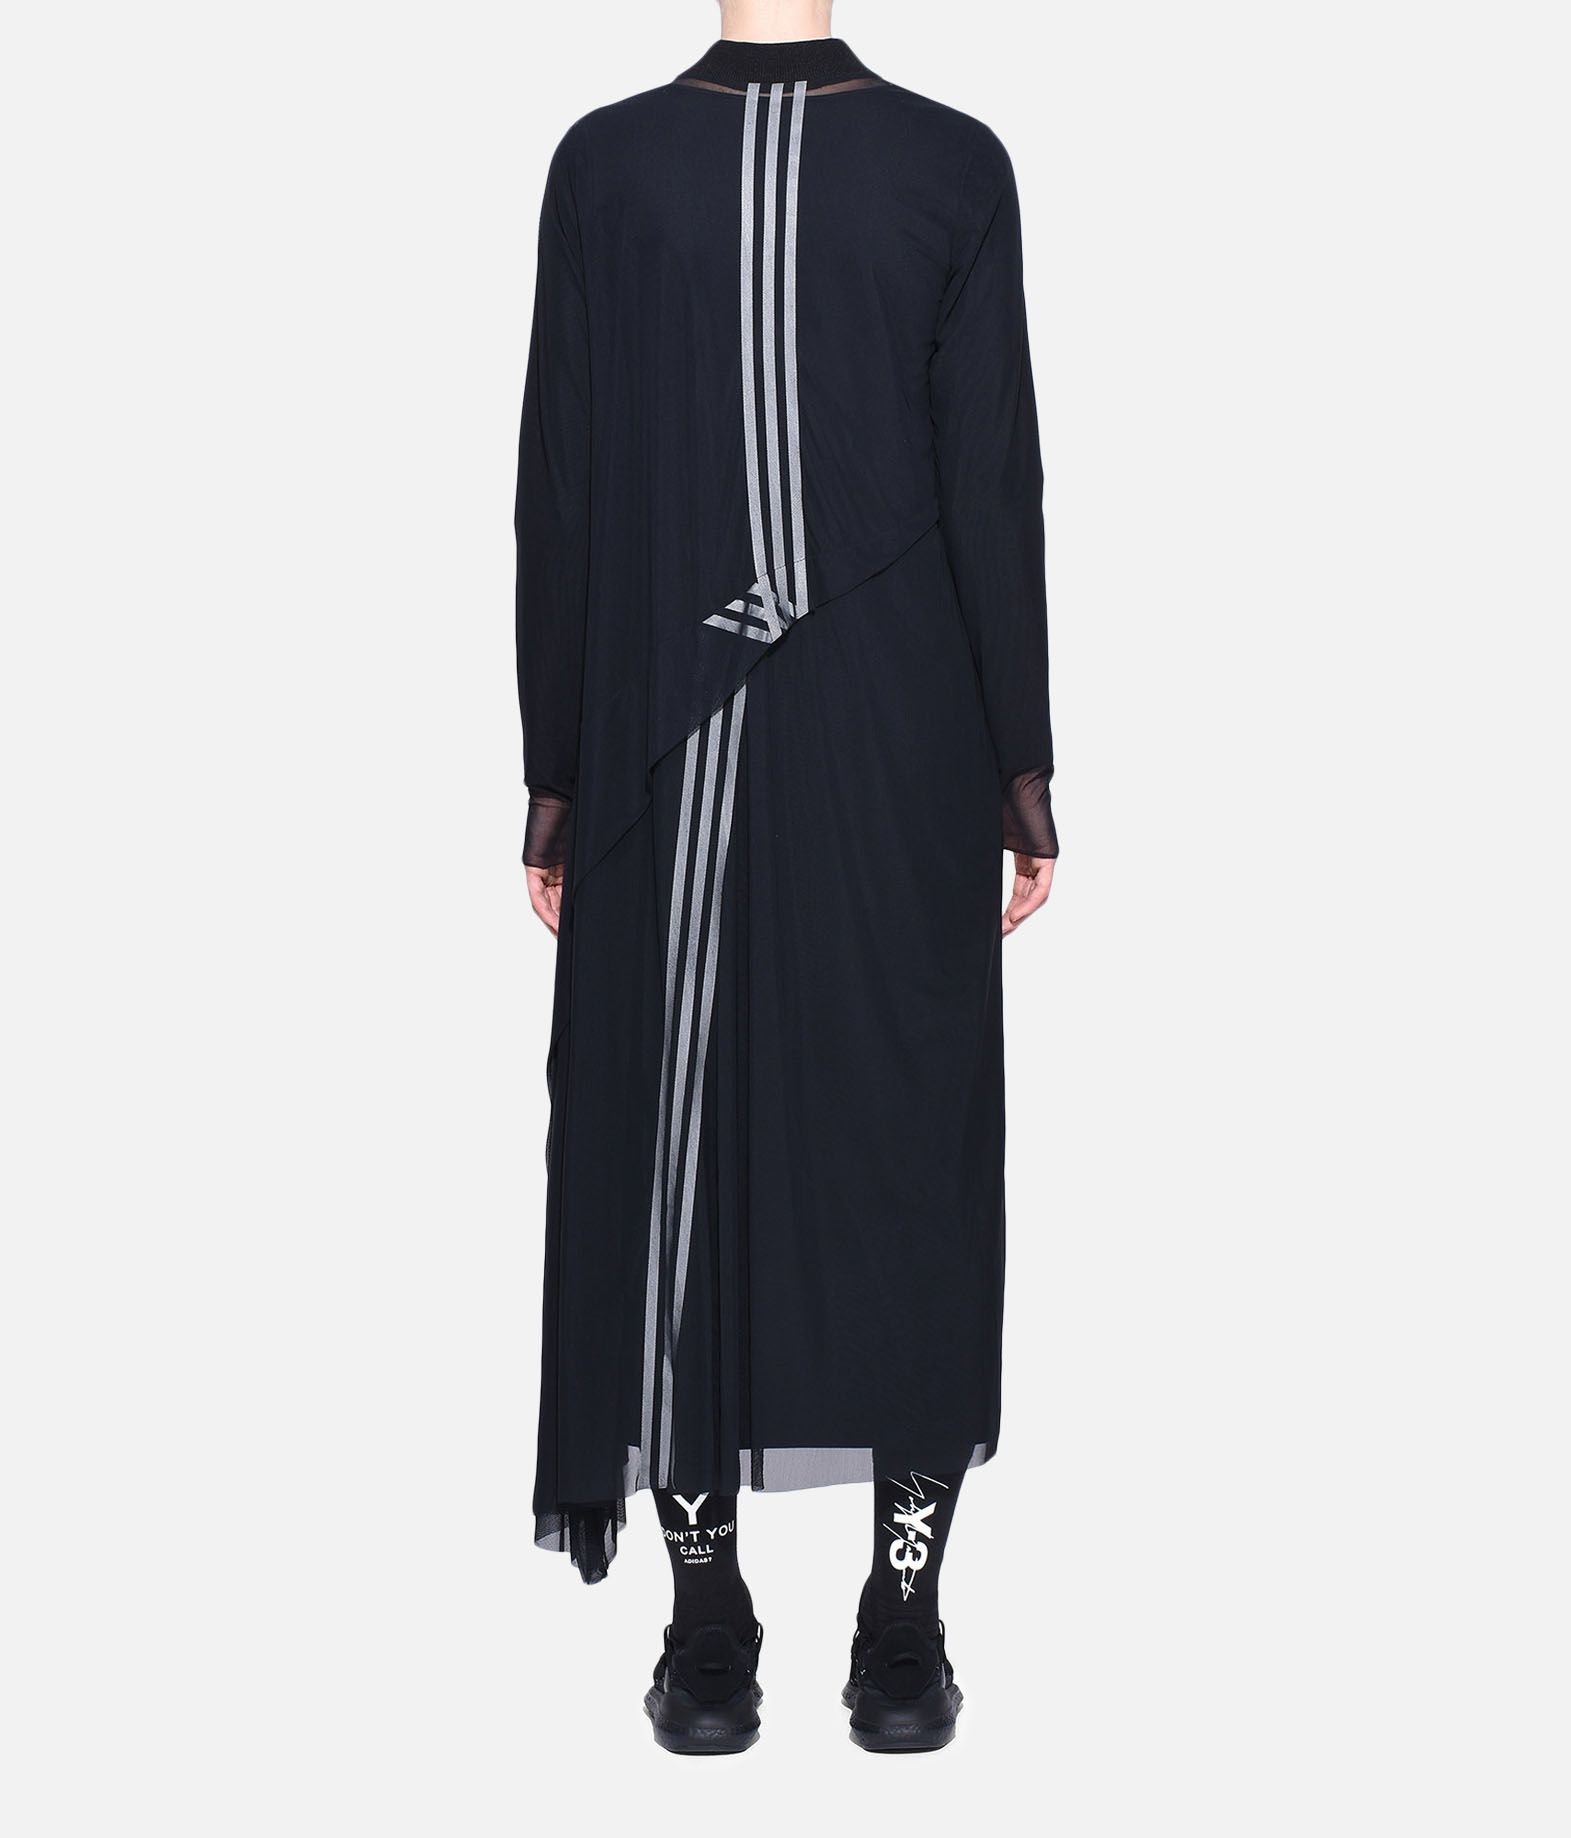 Y-3 Y-3 3-Stripes Mesh Dress Vestito lungo Donna d